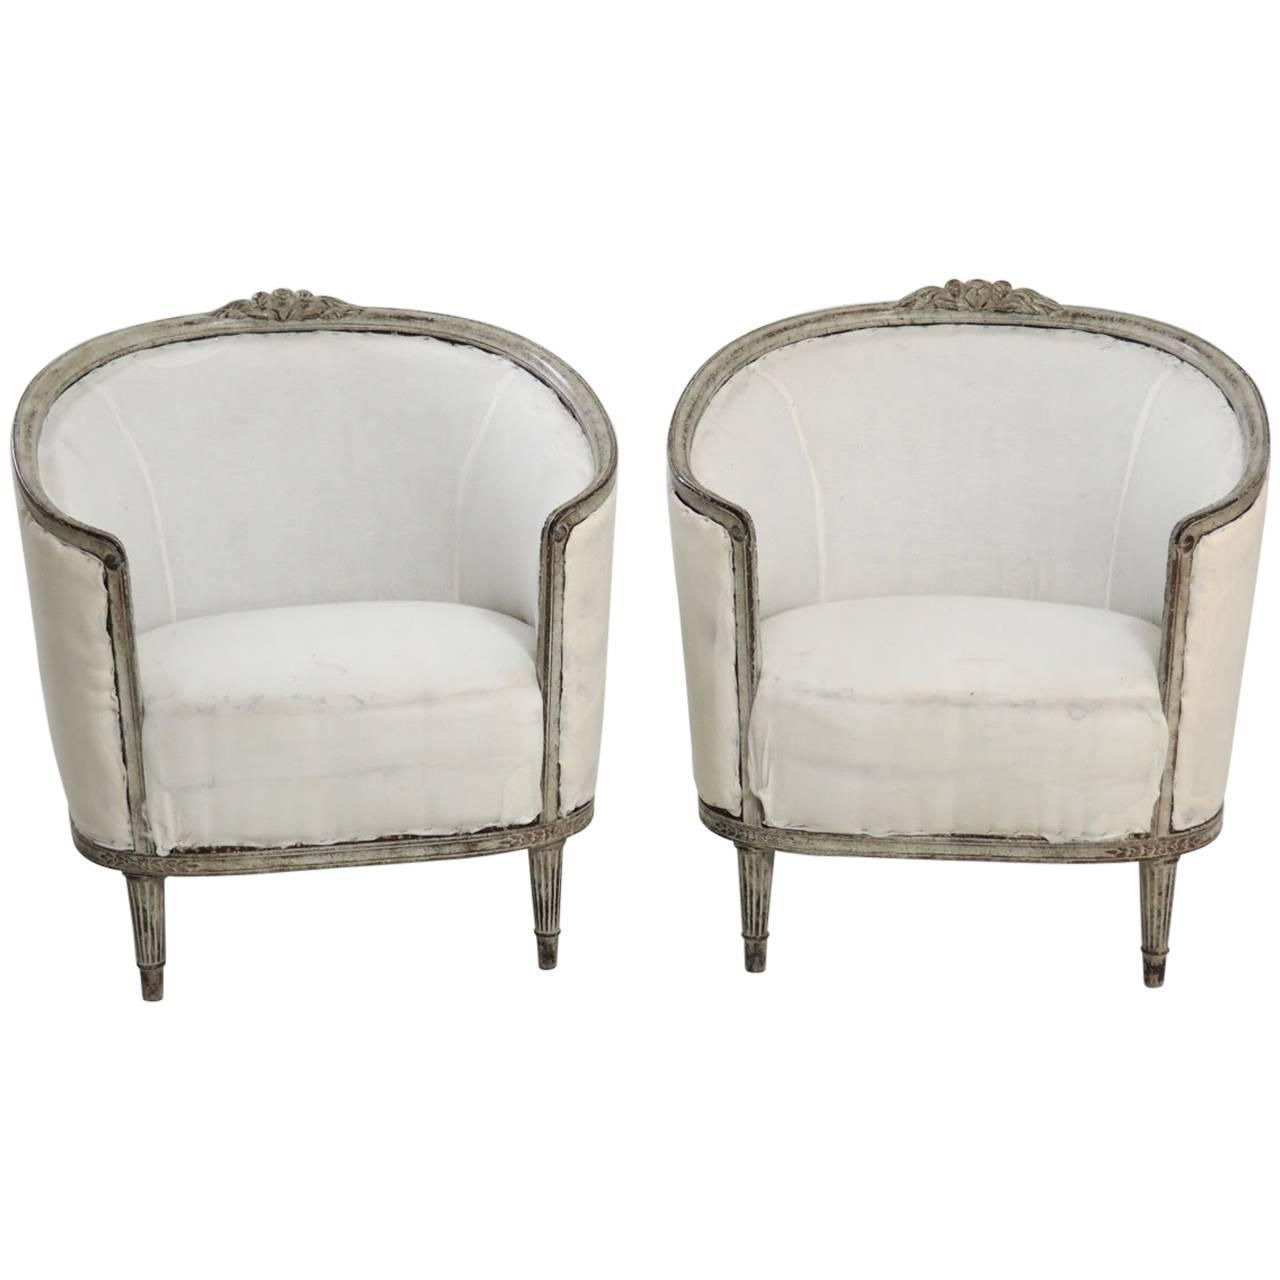 19th Century Pair Of Swedish Gustavian Style Barrel Back Bergere Chairs Maison Co